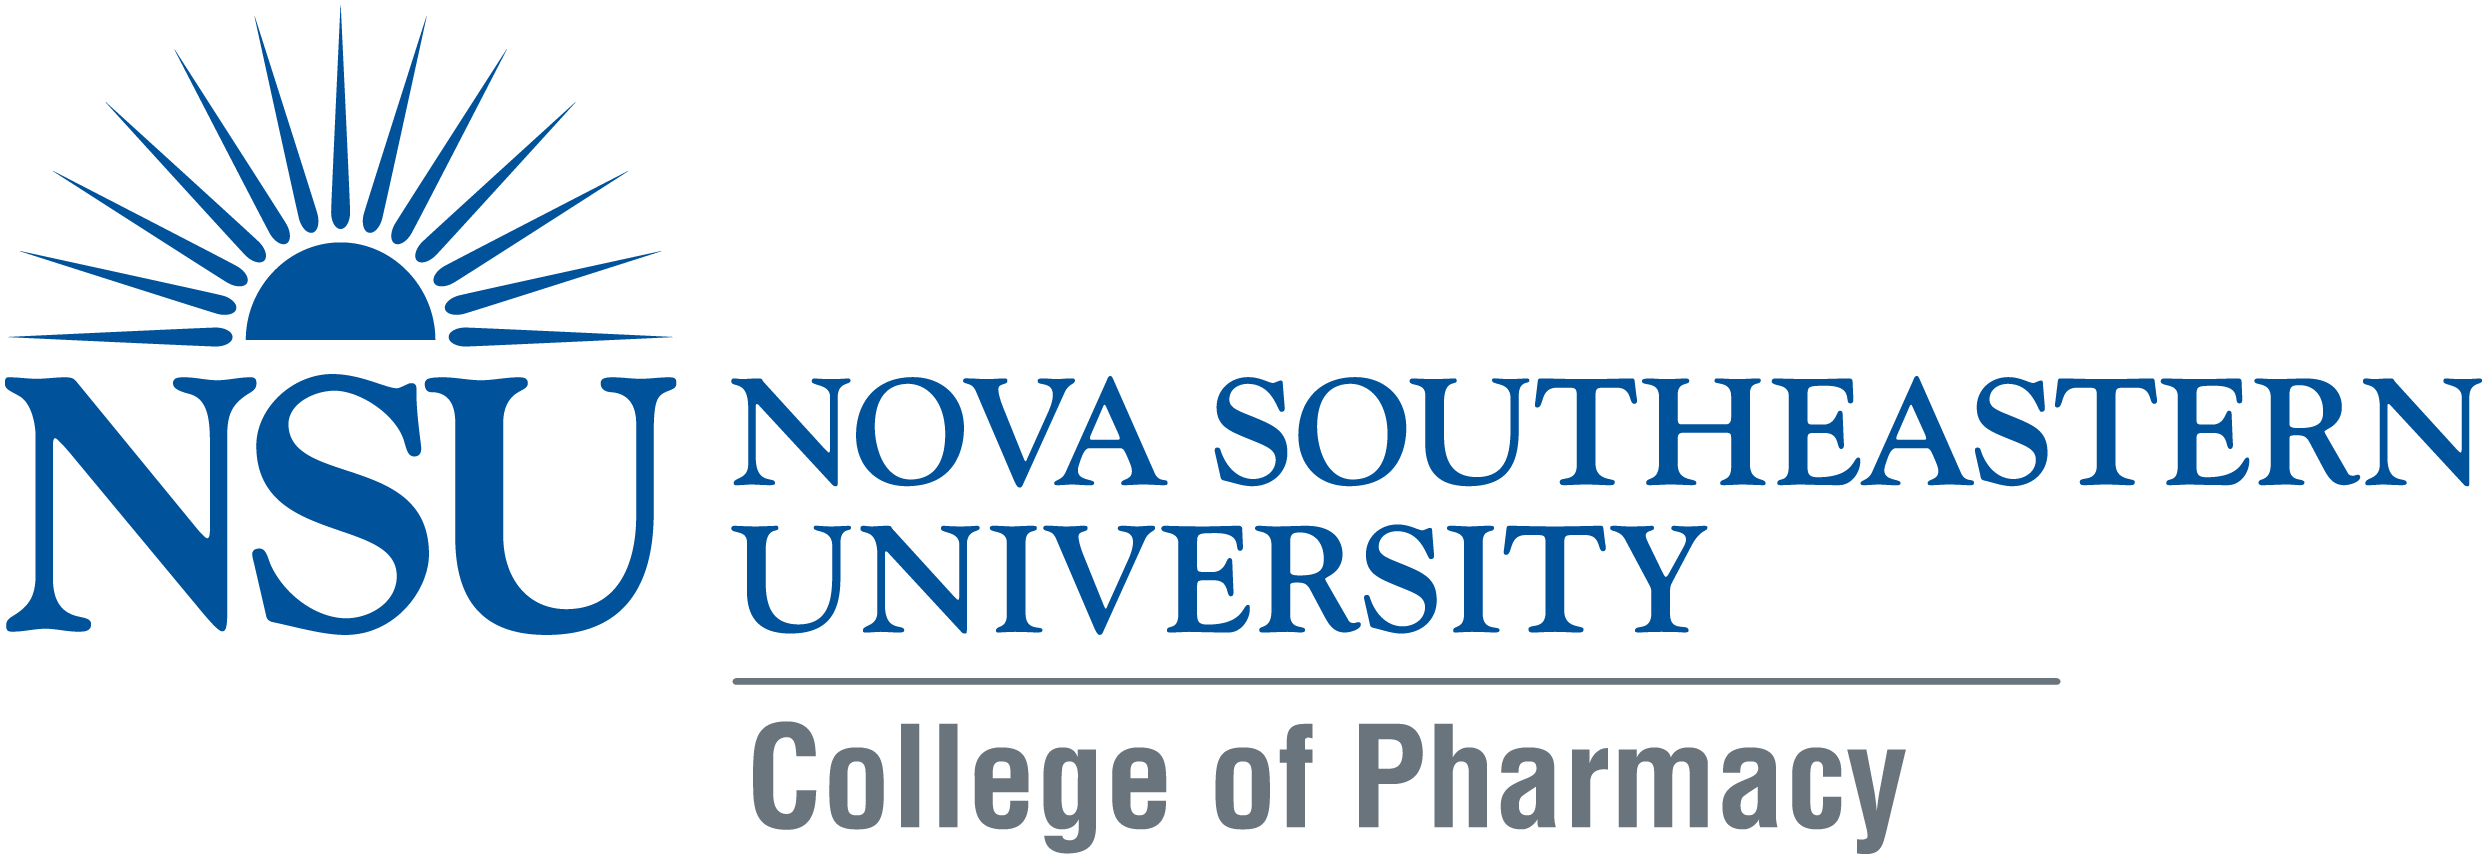 NOVA Southeastern university college of pharmacy